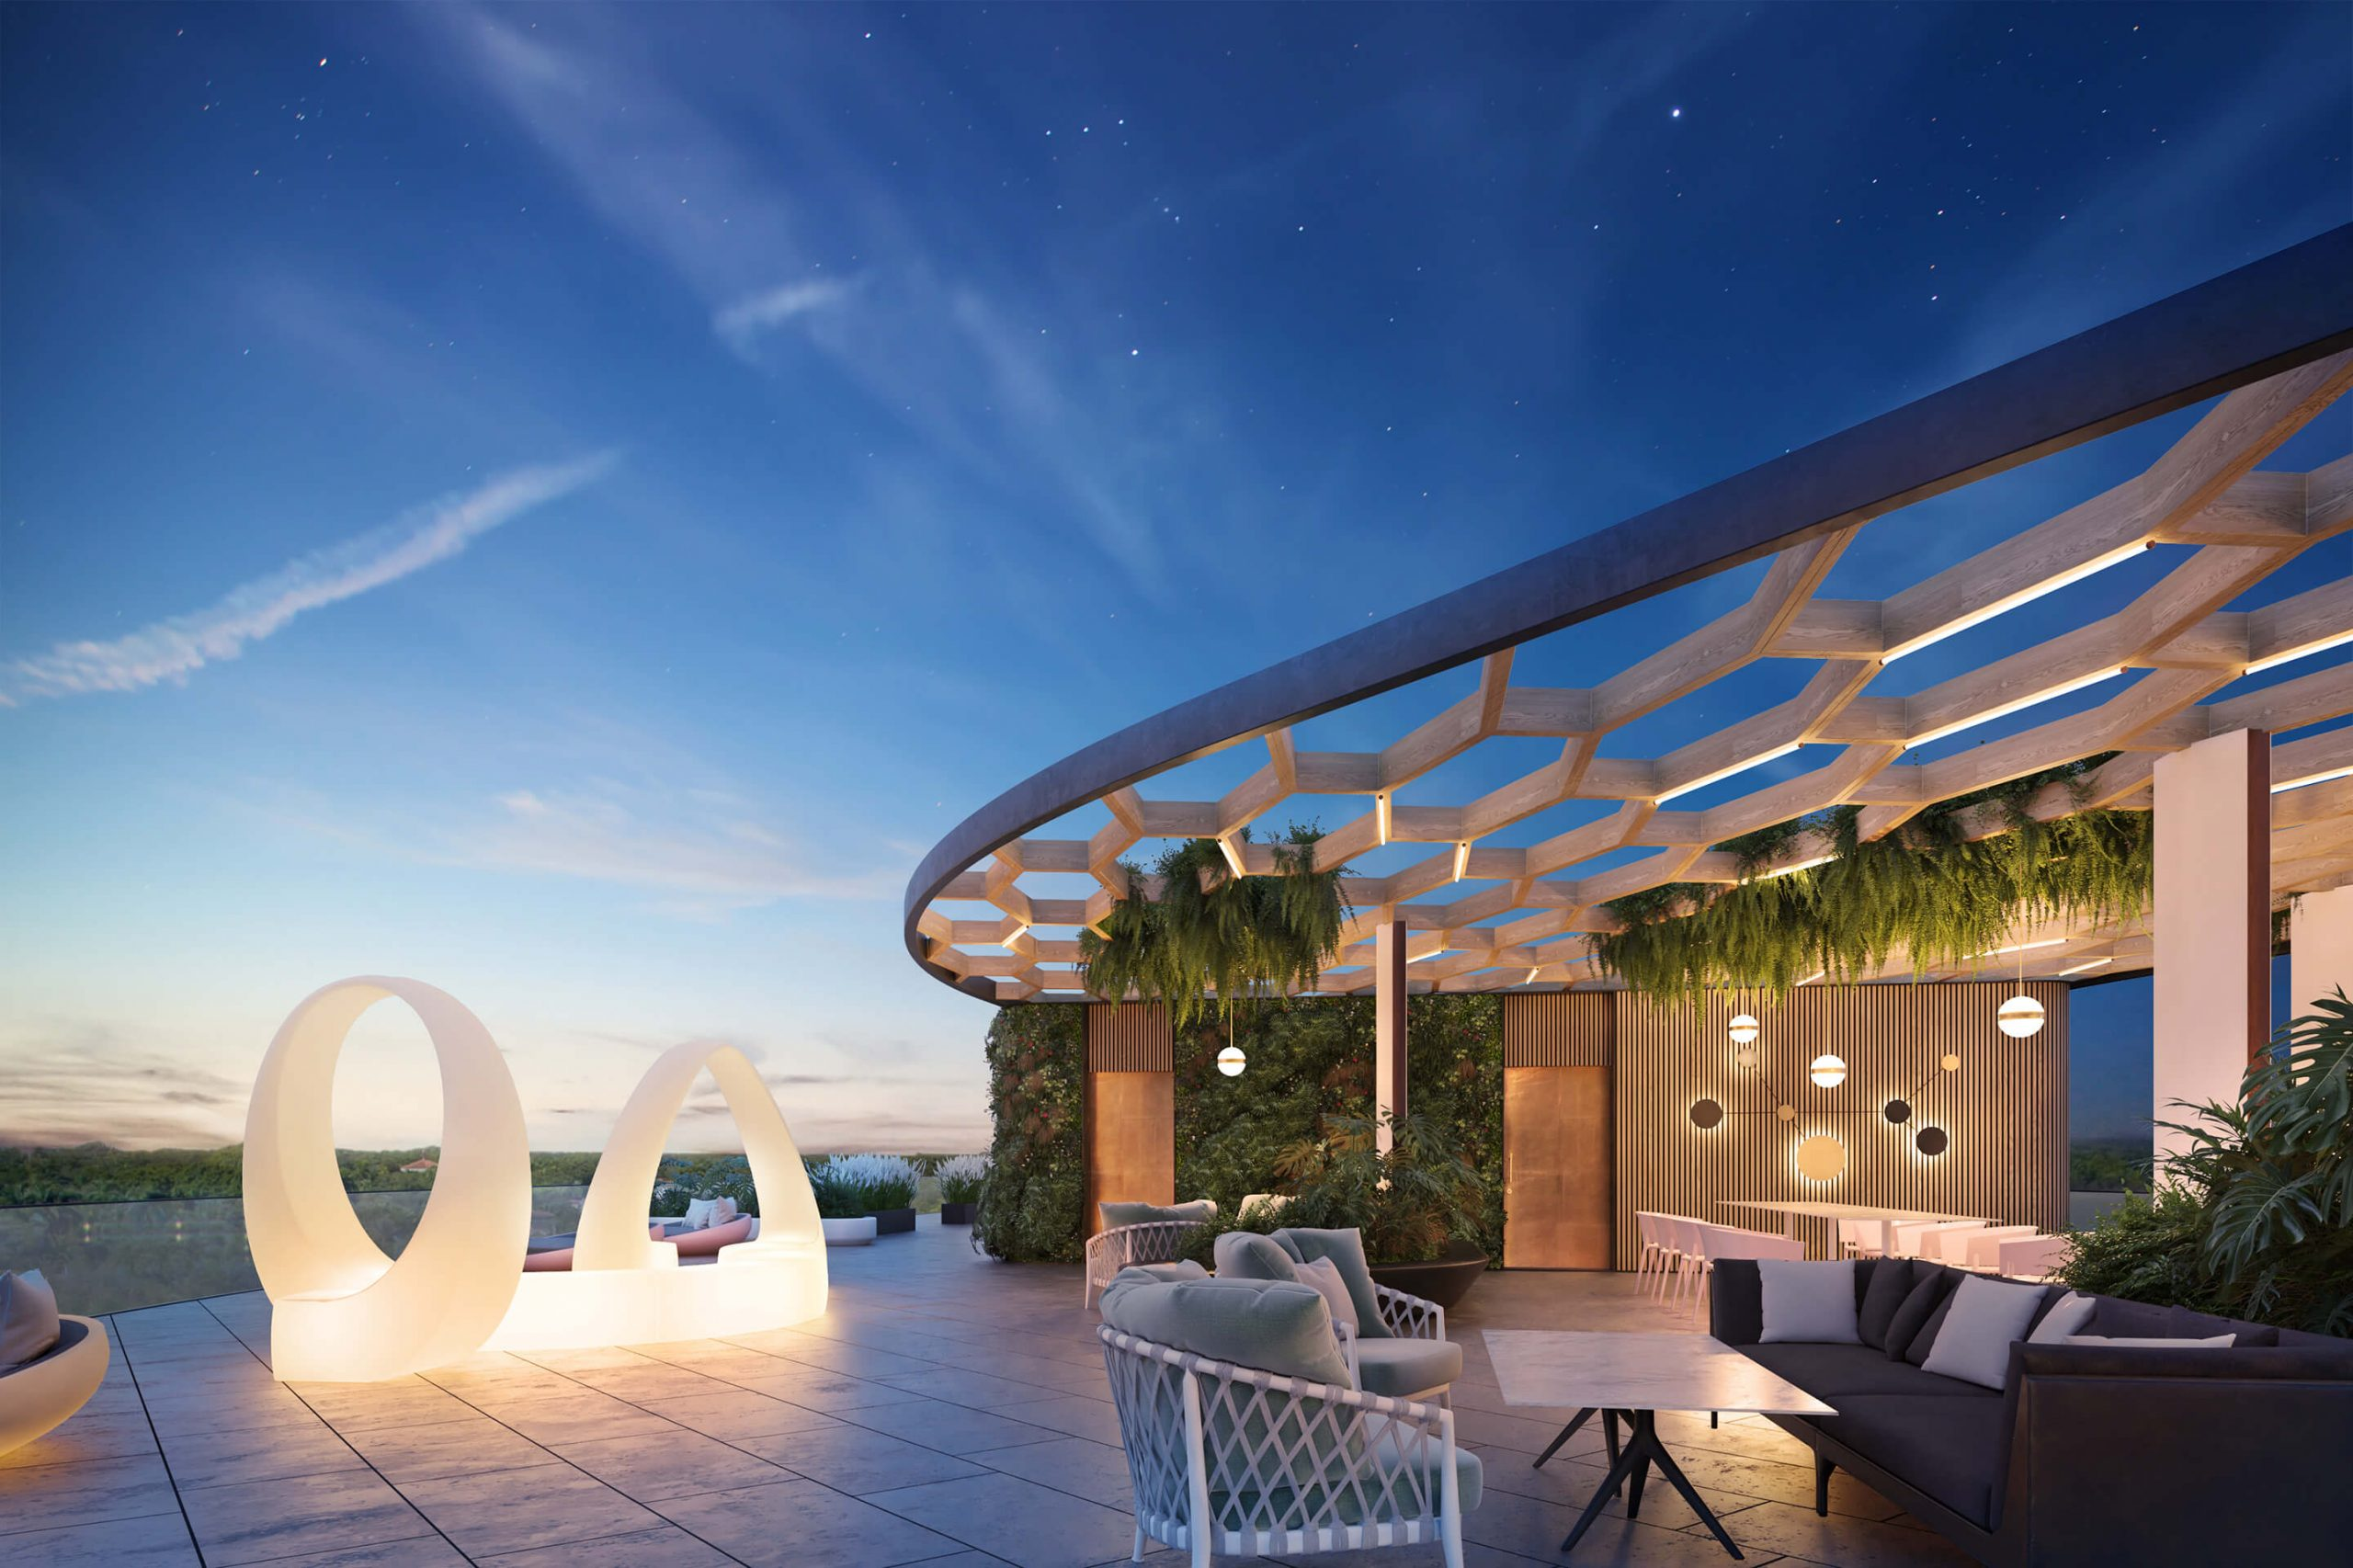 MARITIMA RESIDENCES <br/> Roof top lounge area design